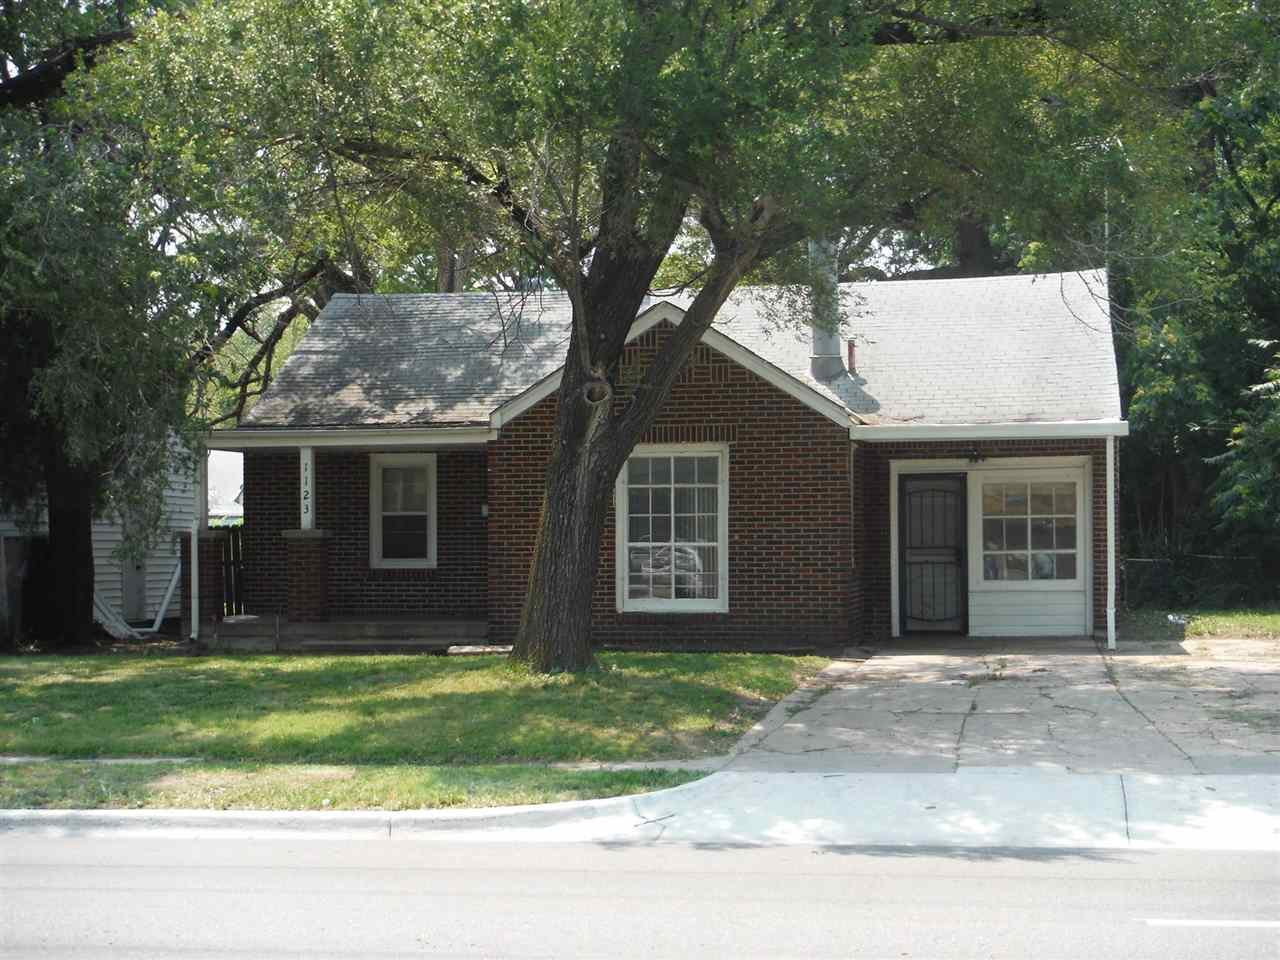 3 bedroom 1 bathroom full red brick home that is move-in ready. Covered front porch with a security